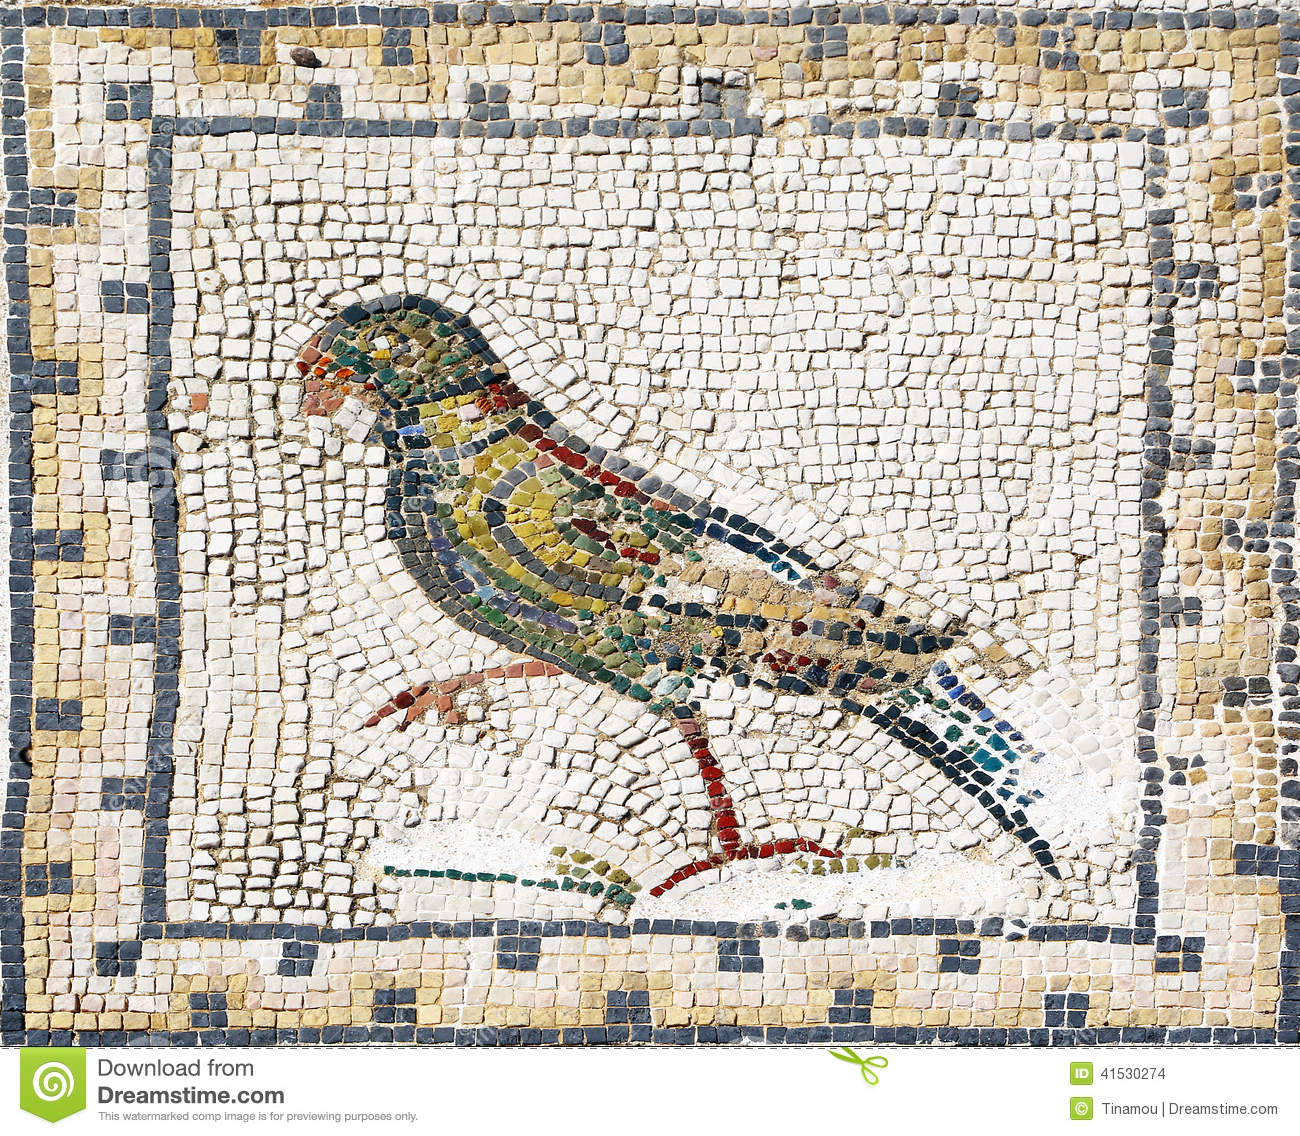 Free Cliparts Roman Mosaic, Download Free Clip Art, Free.